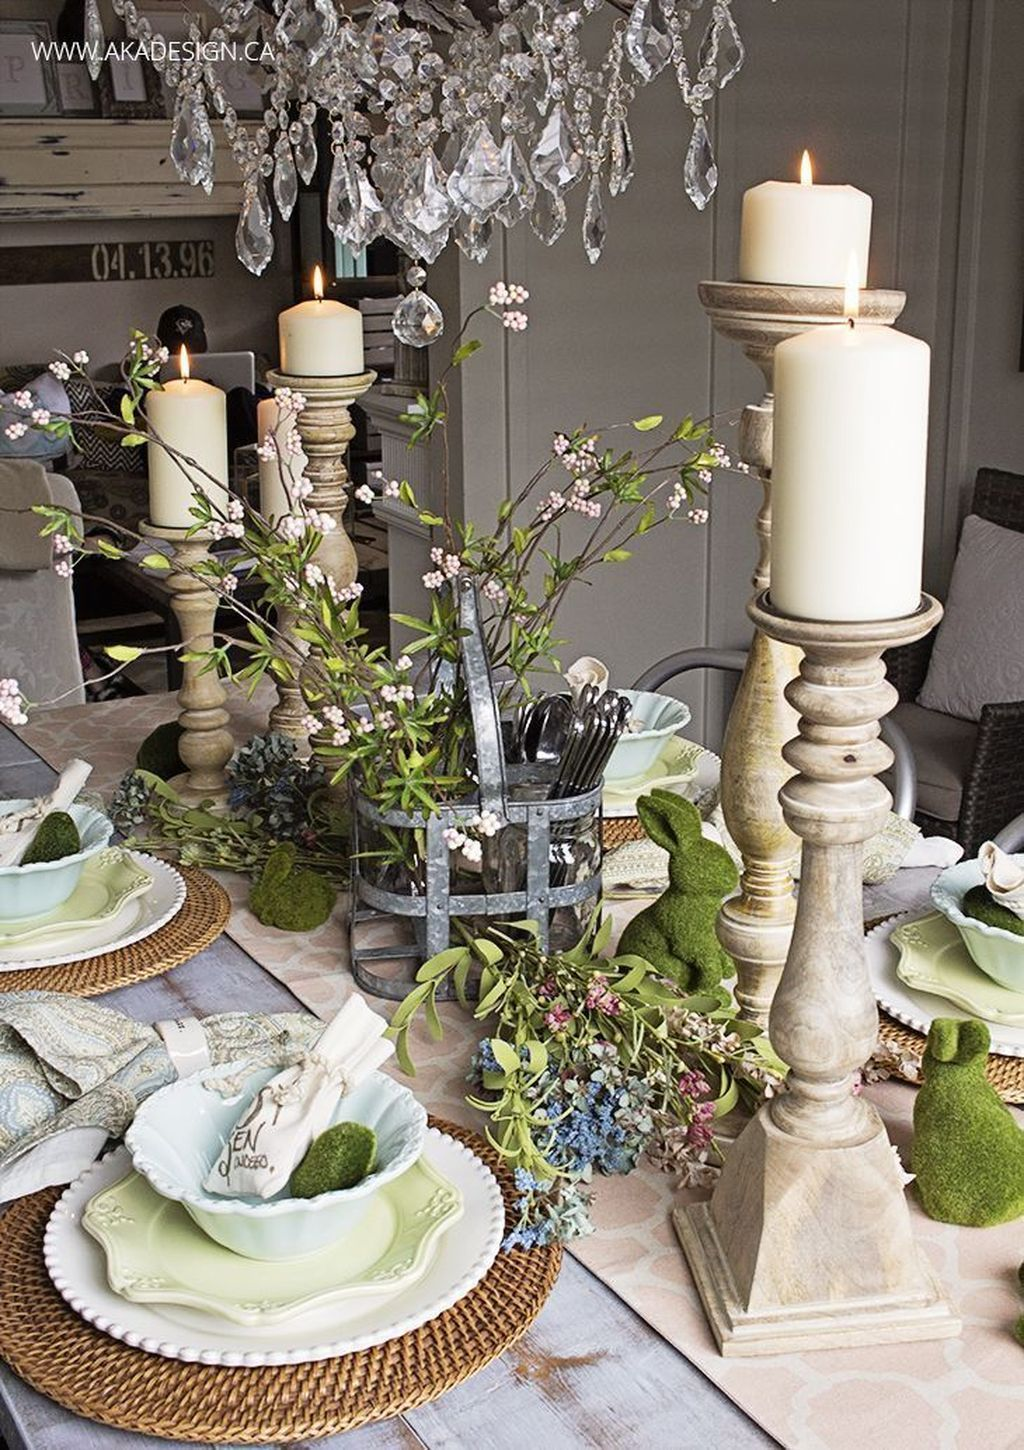 Fine 36 Stunning Spring Dining Room Table Centerpiece Ideas Easter Table Settings Easter Table Decorations Spring Table Centerpieces